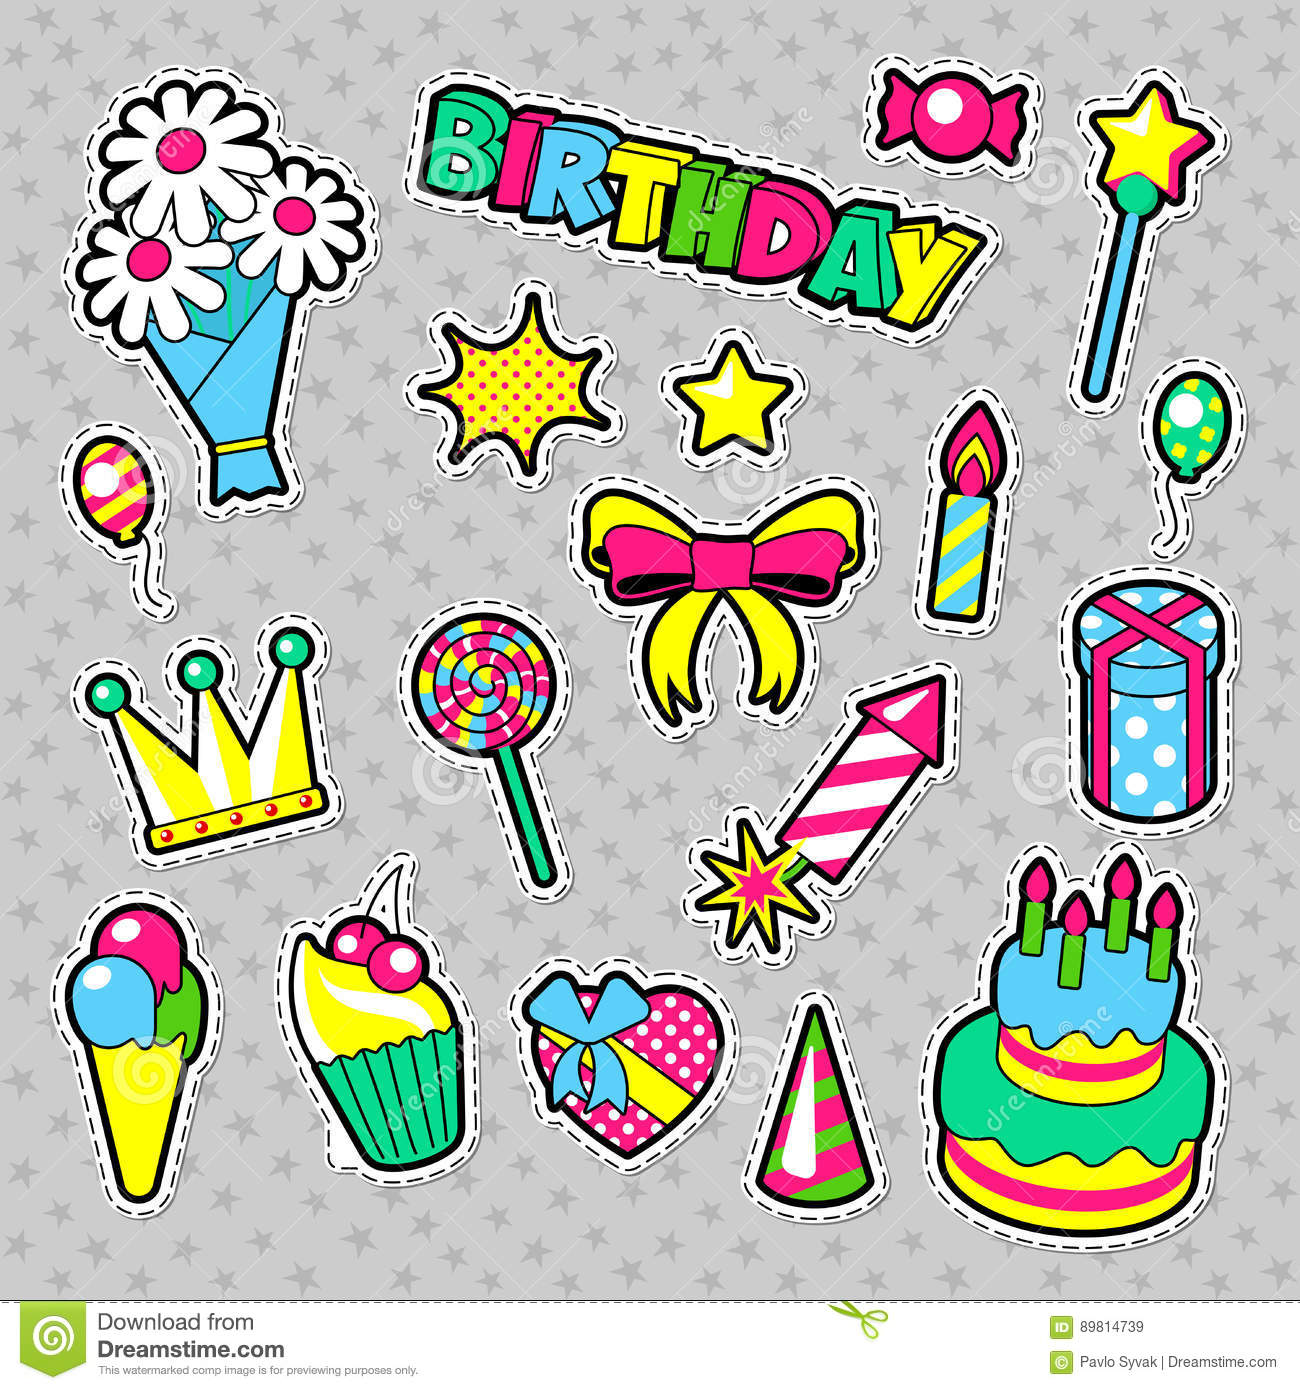 design sticker birthday ; fashion-badges-patches-stickers-birthday-theme-happy-birthday-party-elements-comic-style-cake-balloons-gifts-vector-89814739